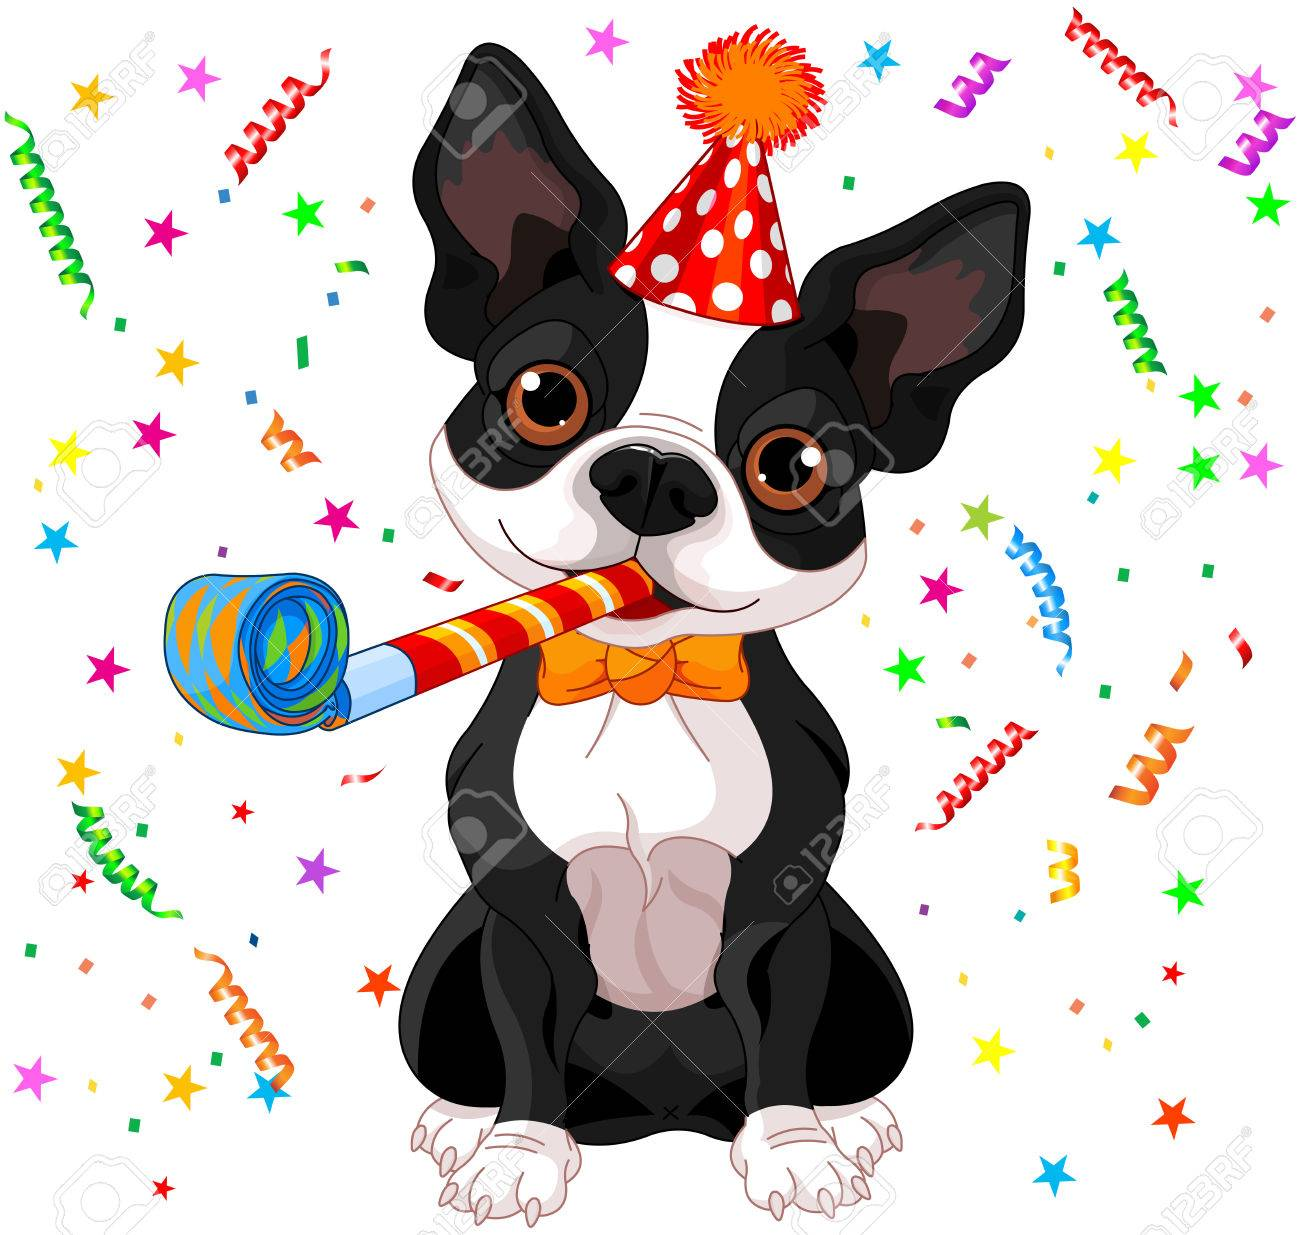 Débuts au clicker - Page 28 35588778-illustration-of-cute-boston-terrier-celebrating